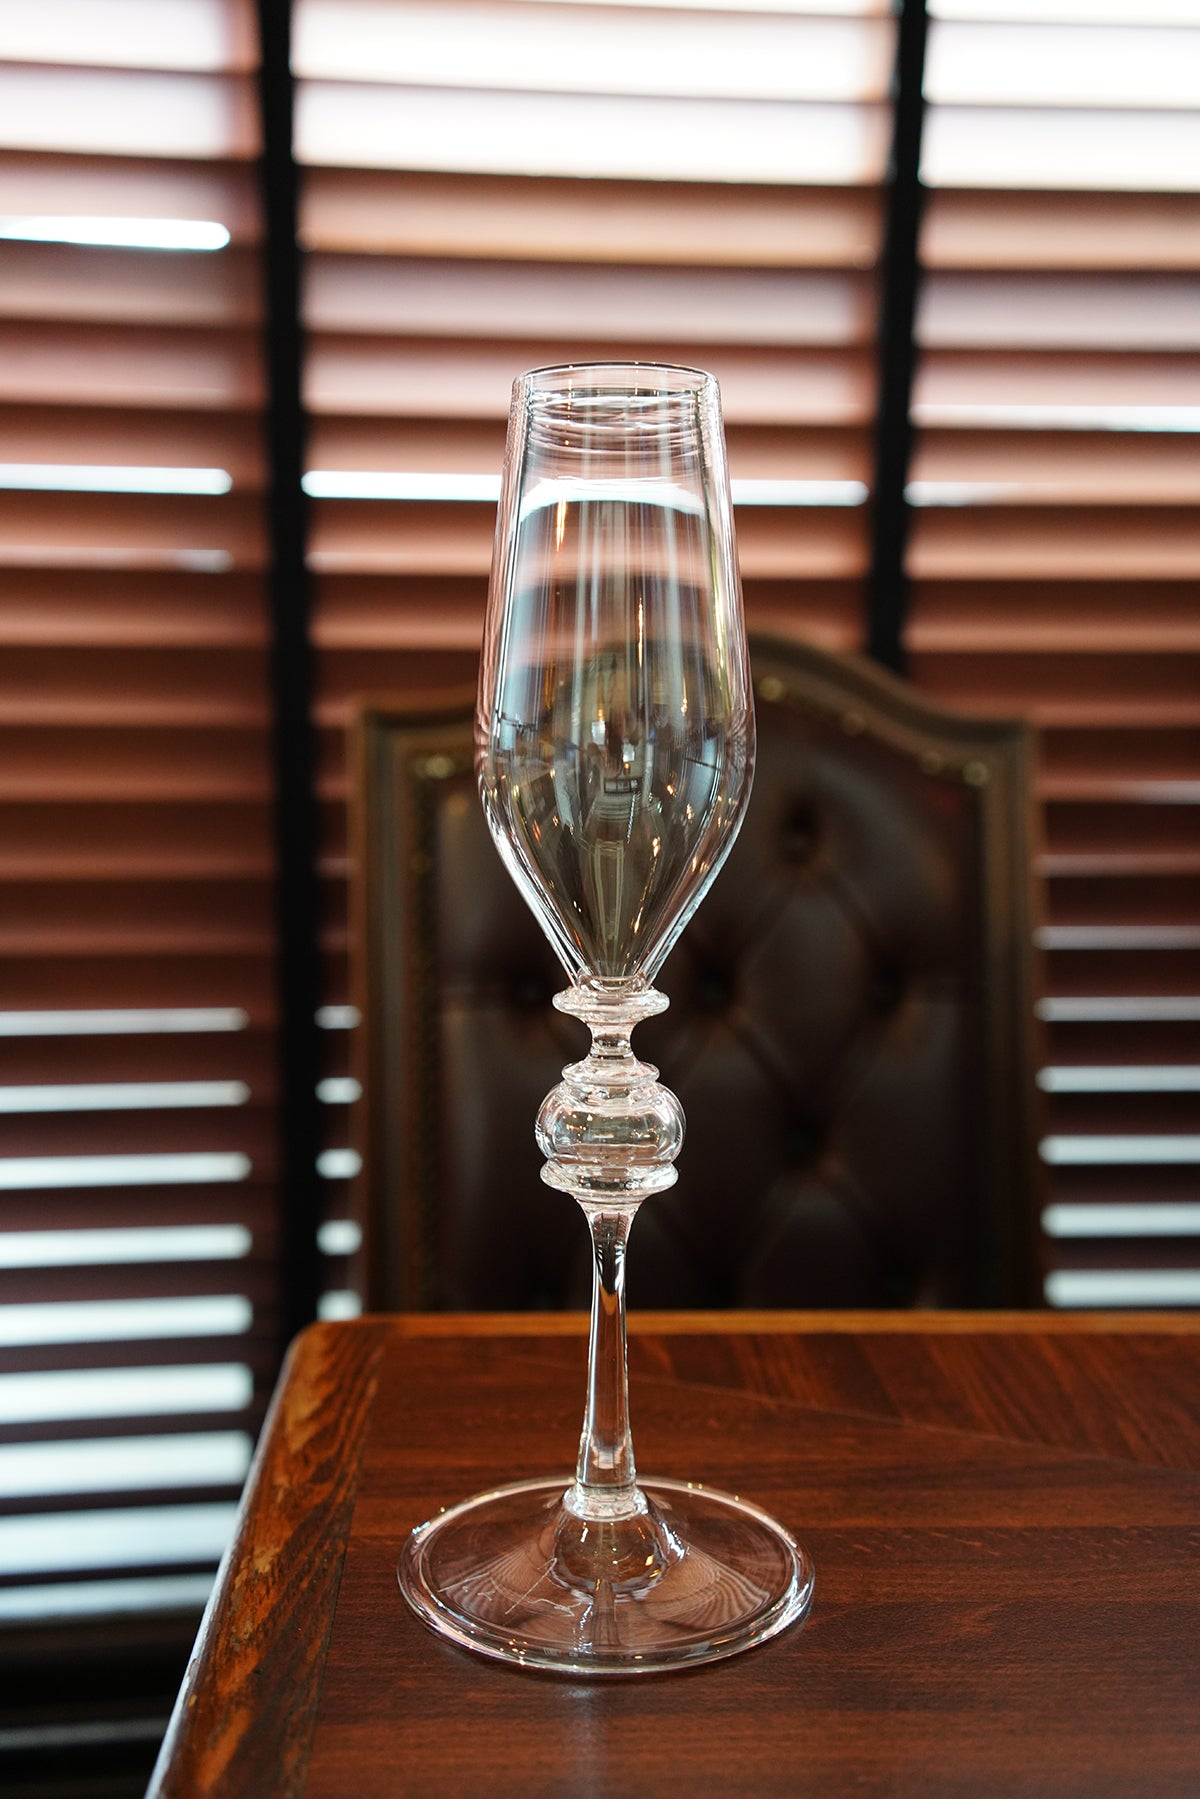 SORTE GLASS Ryo Sekino Champagne Glass goblet (Clear cup W stem)